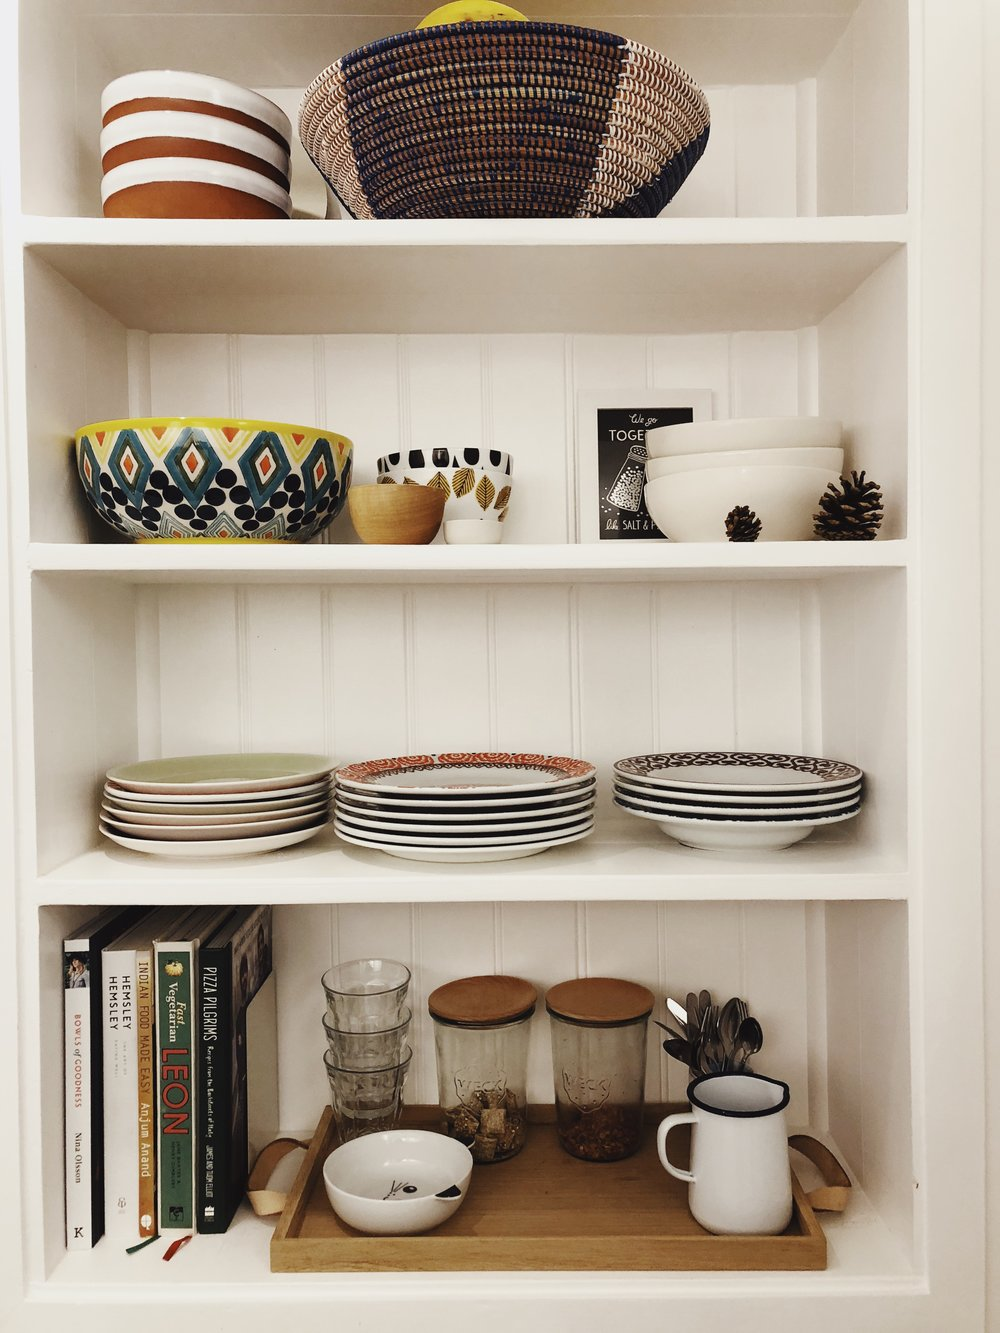 kitchen shelves open shelves shelf styling kitchen shelf ideas kitchen shelf styling open shelves kitchen small kitchen tiny kitchen maximise space ourstorytime.co.uk